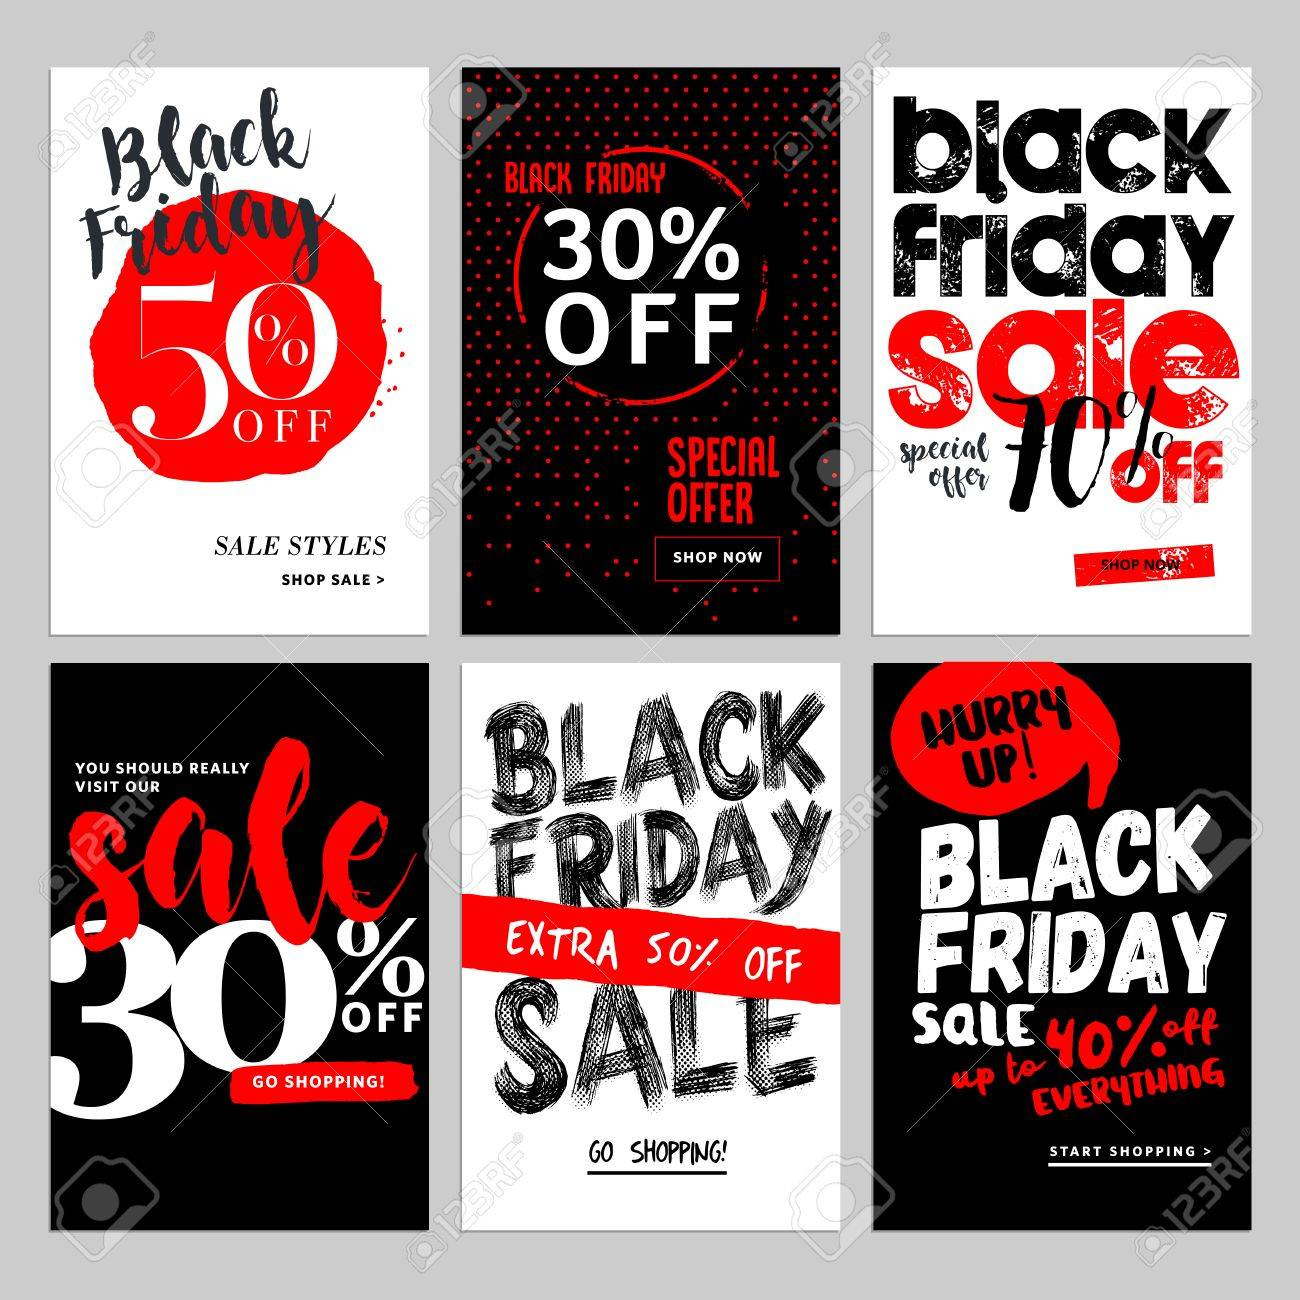 Set of mobile sale banners. Black Friday sale banners. Vector illustrations of online shopping website and mobile website banners, posters, newsletter designs, ads, coupons, social media banners. - 66002992